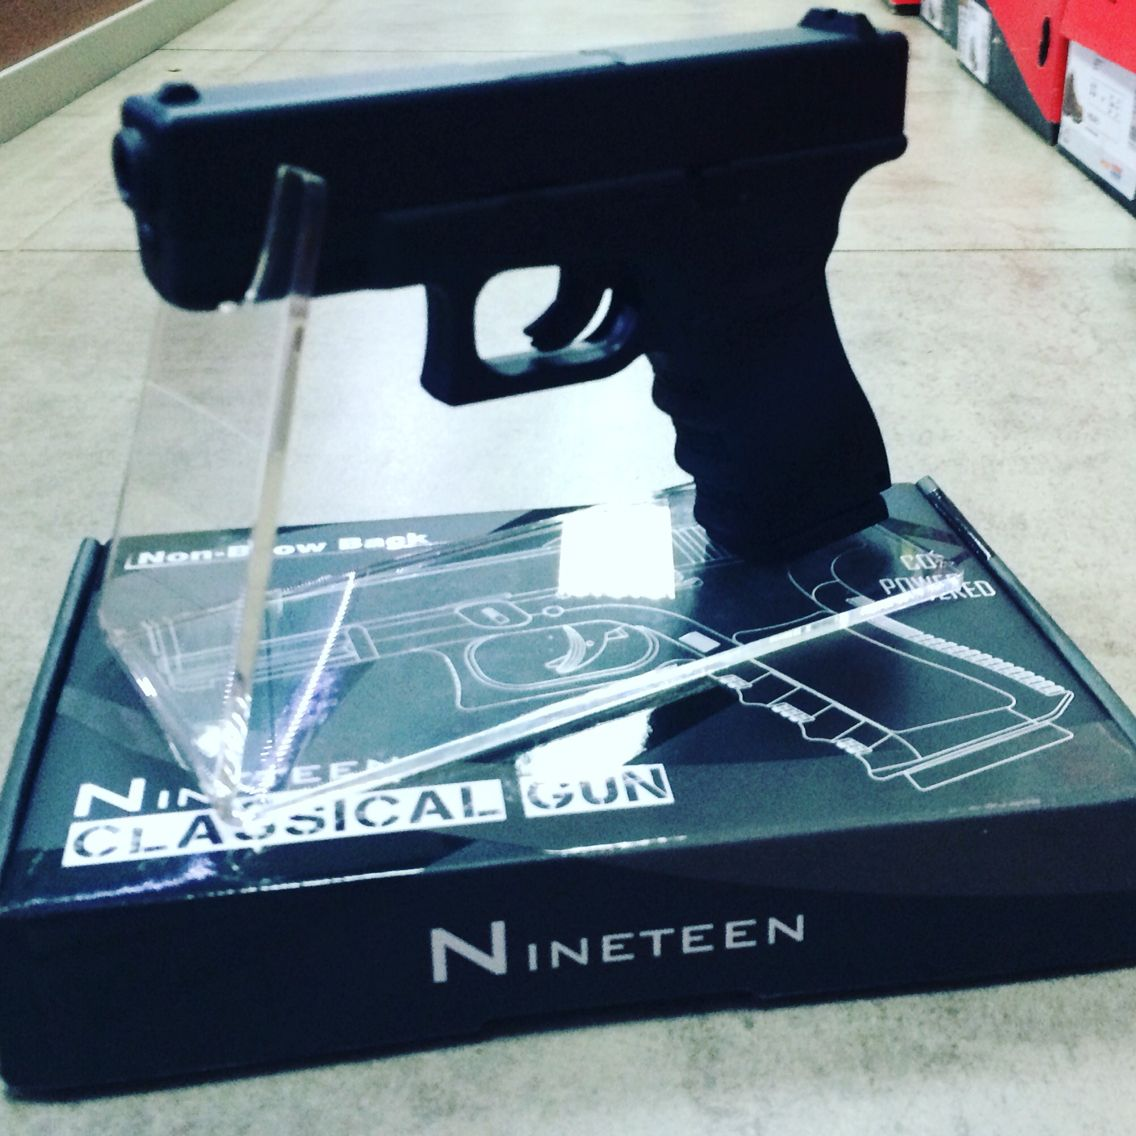 New air-pistol at blades and triggers | Blades and triggers